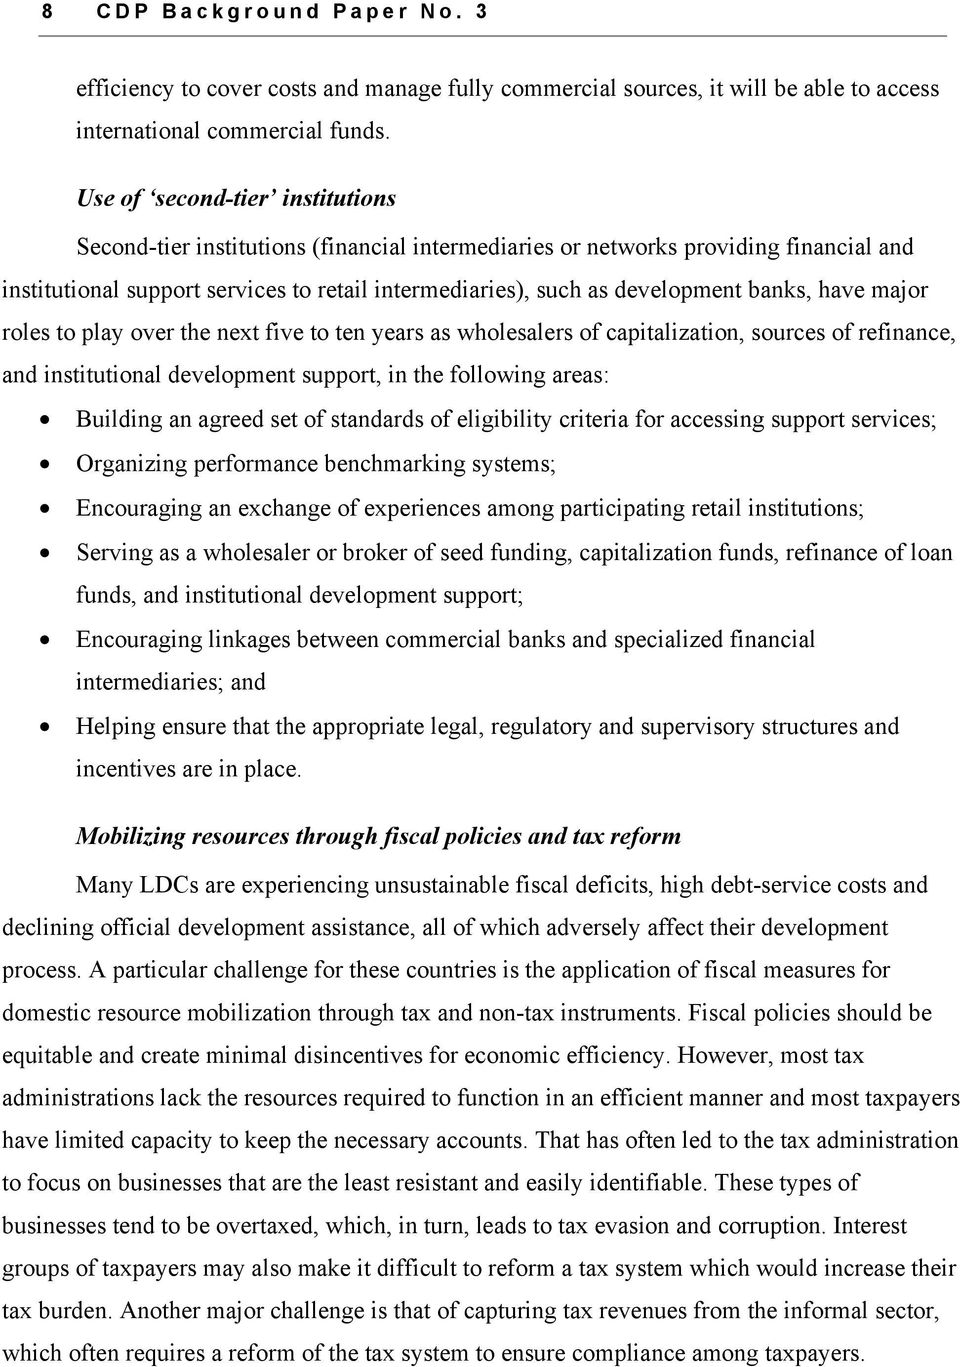 banks, have major roles to play over the next five to ten years as wholesalers of capitalization, sources of refinance, and institutional development support, in the following areas: Building an